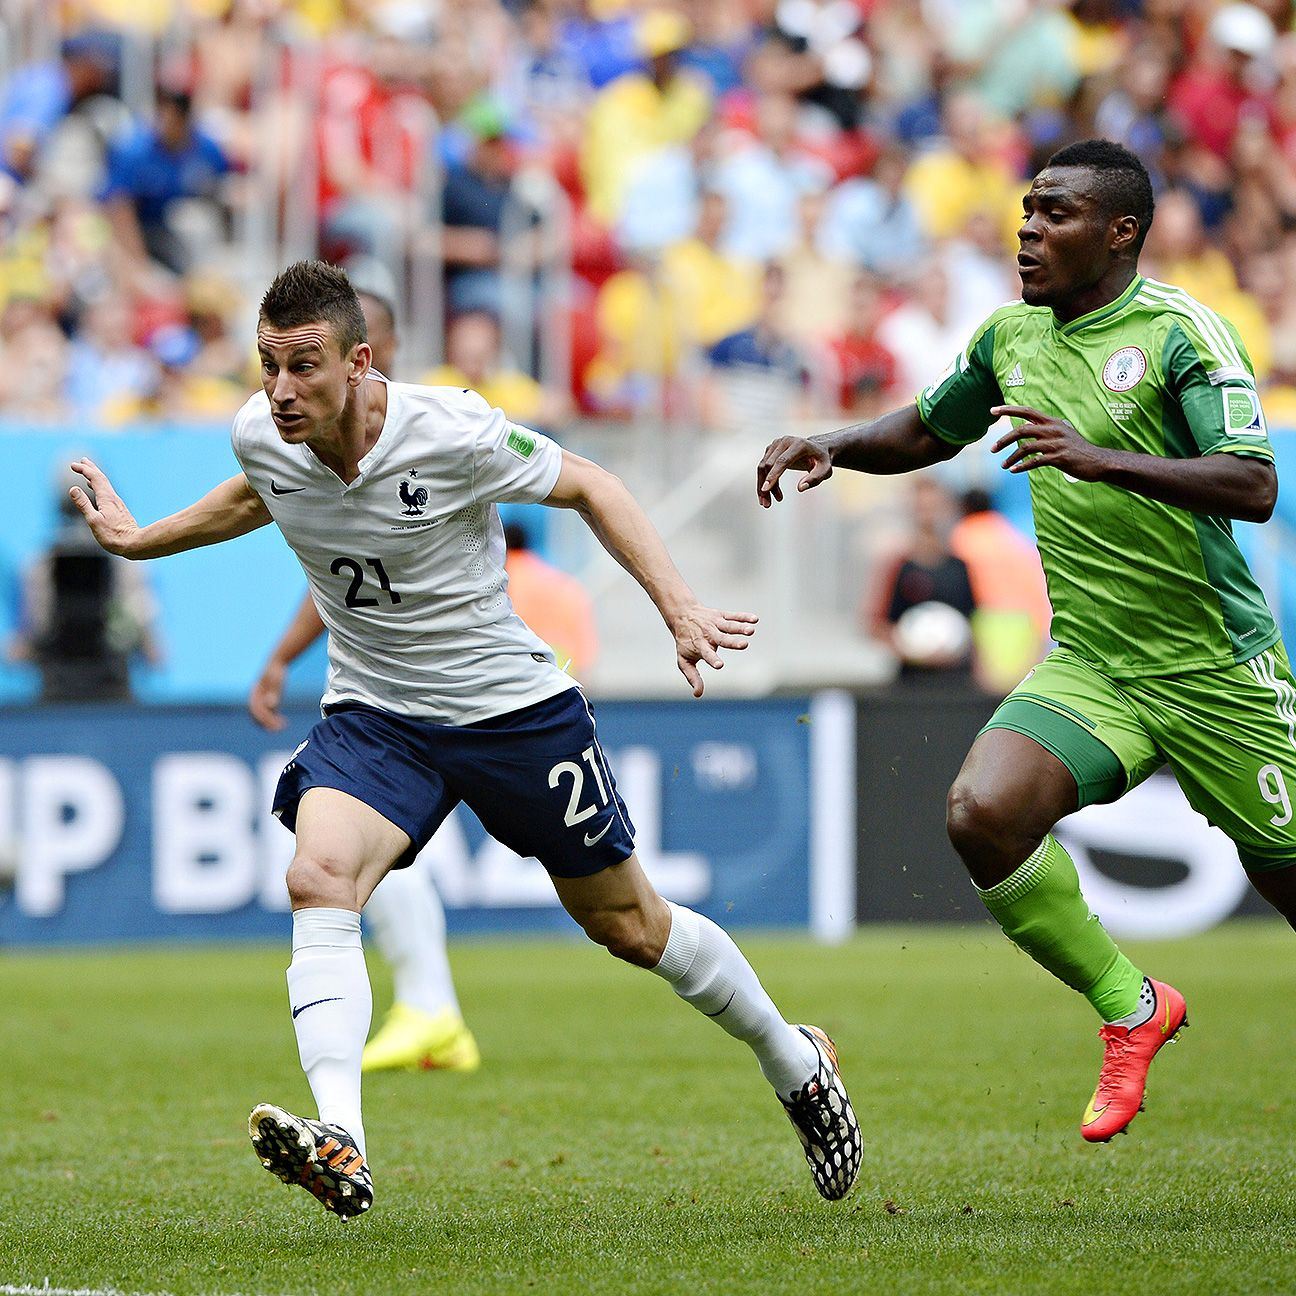 Laurent Koscielny, now starting at centre-back, will play a key role for France at Euro 2016.